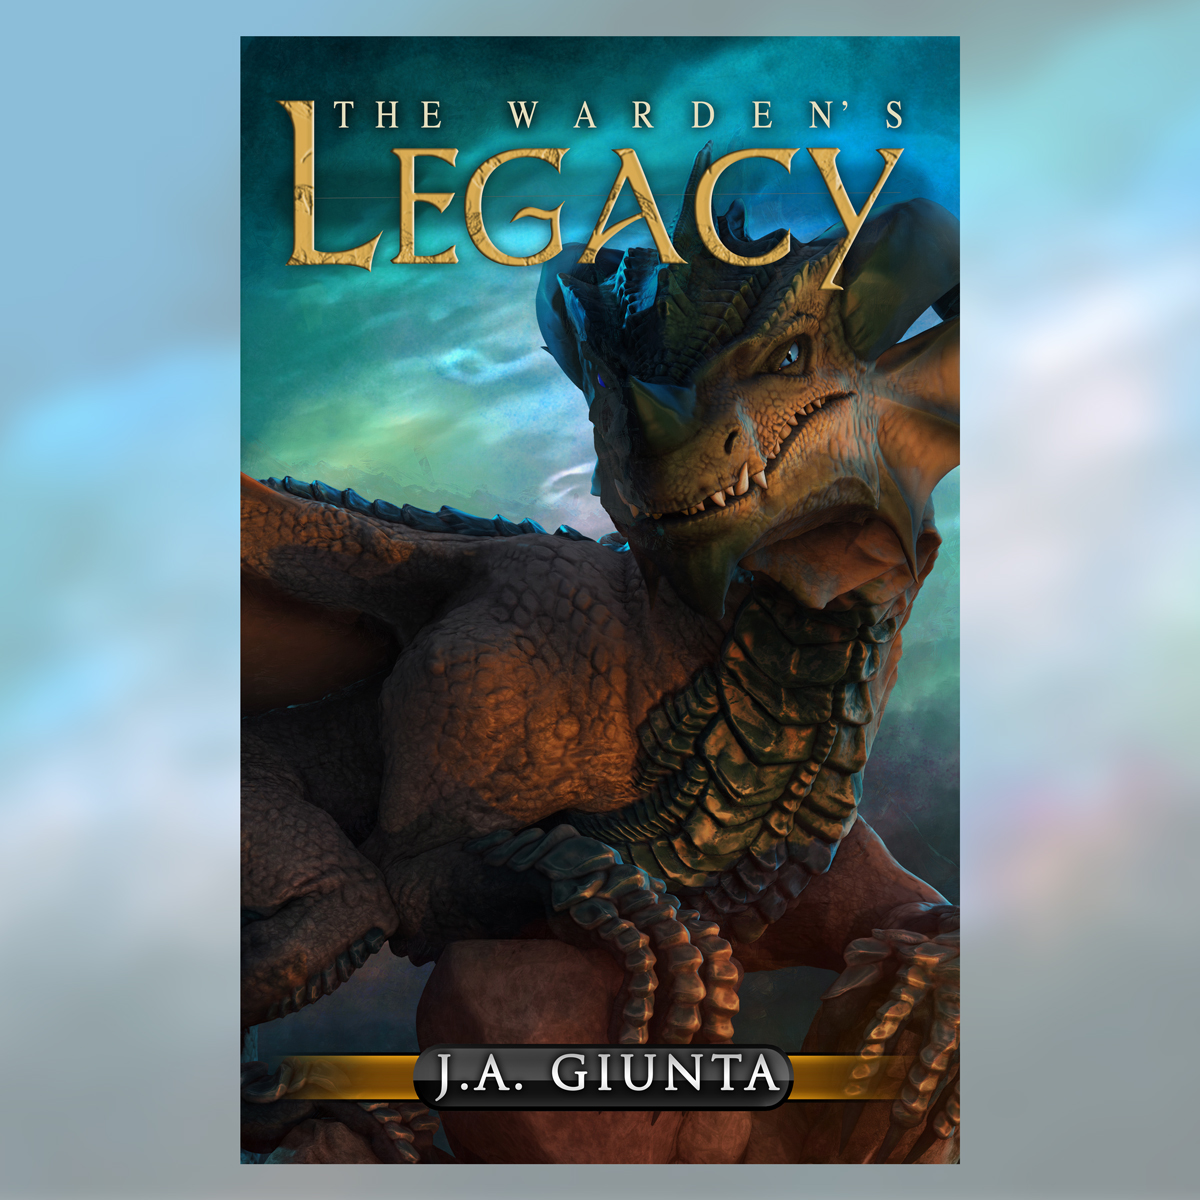 The Warden's Legacy vy J.A. Giunta